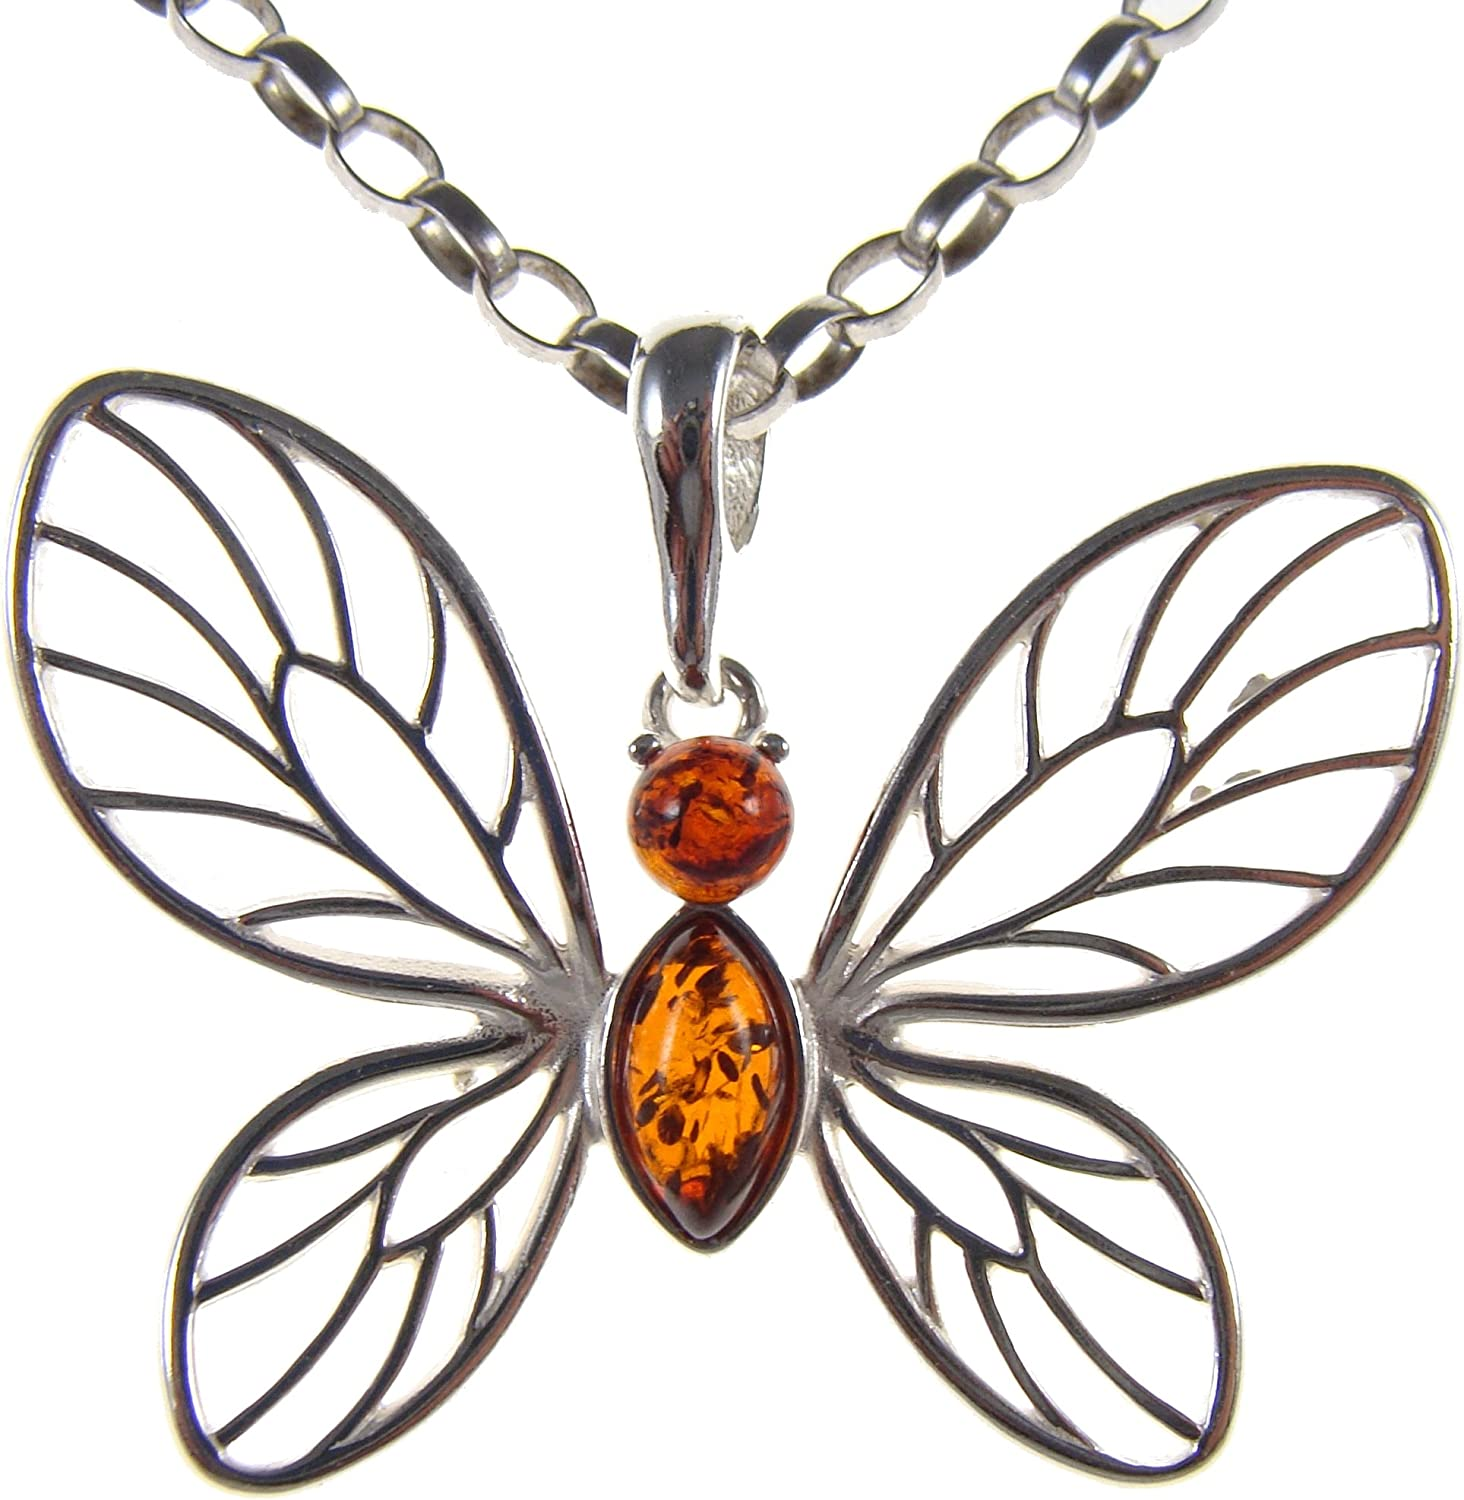 BALTIC AMBER AND STERLING SILVER 925 BUTTERFLY PENDANT NECKLACE 14 16 18 20 22 24 26 28 30 32 34 1mm ITALIAN SNAKE CHAIN